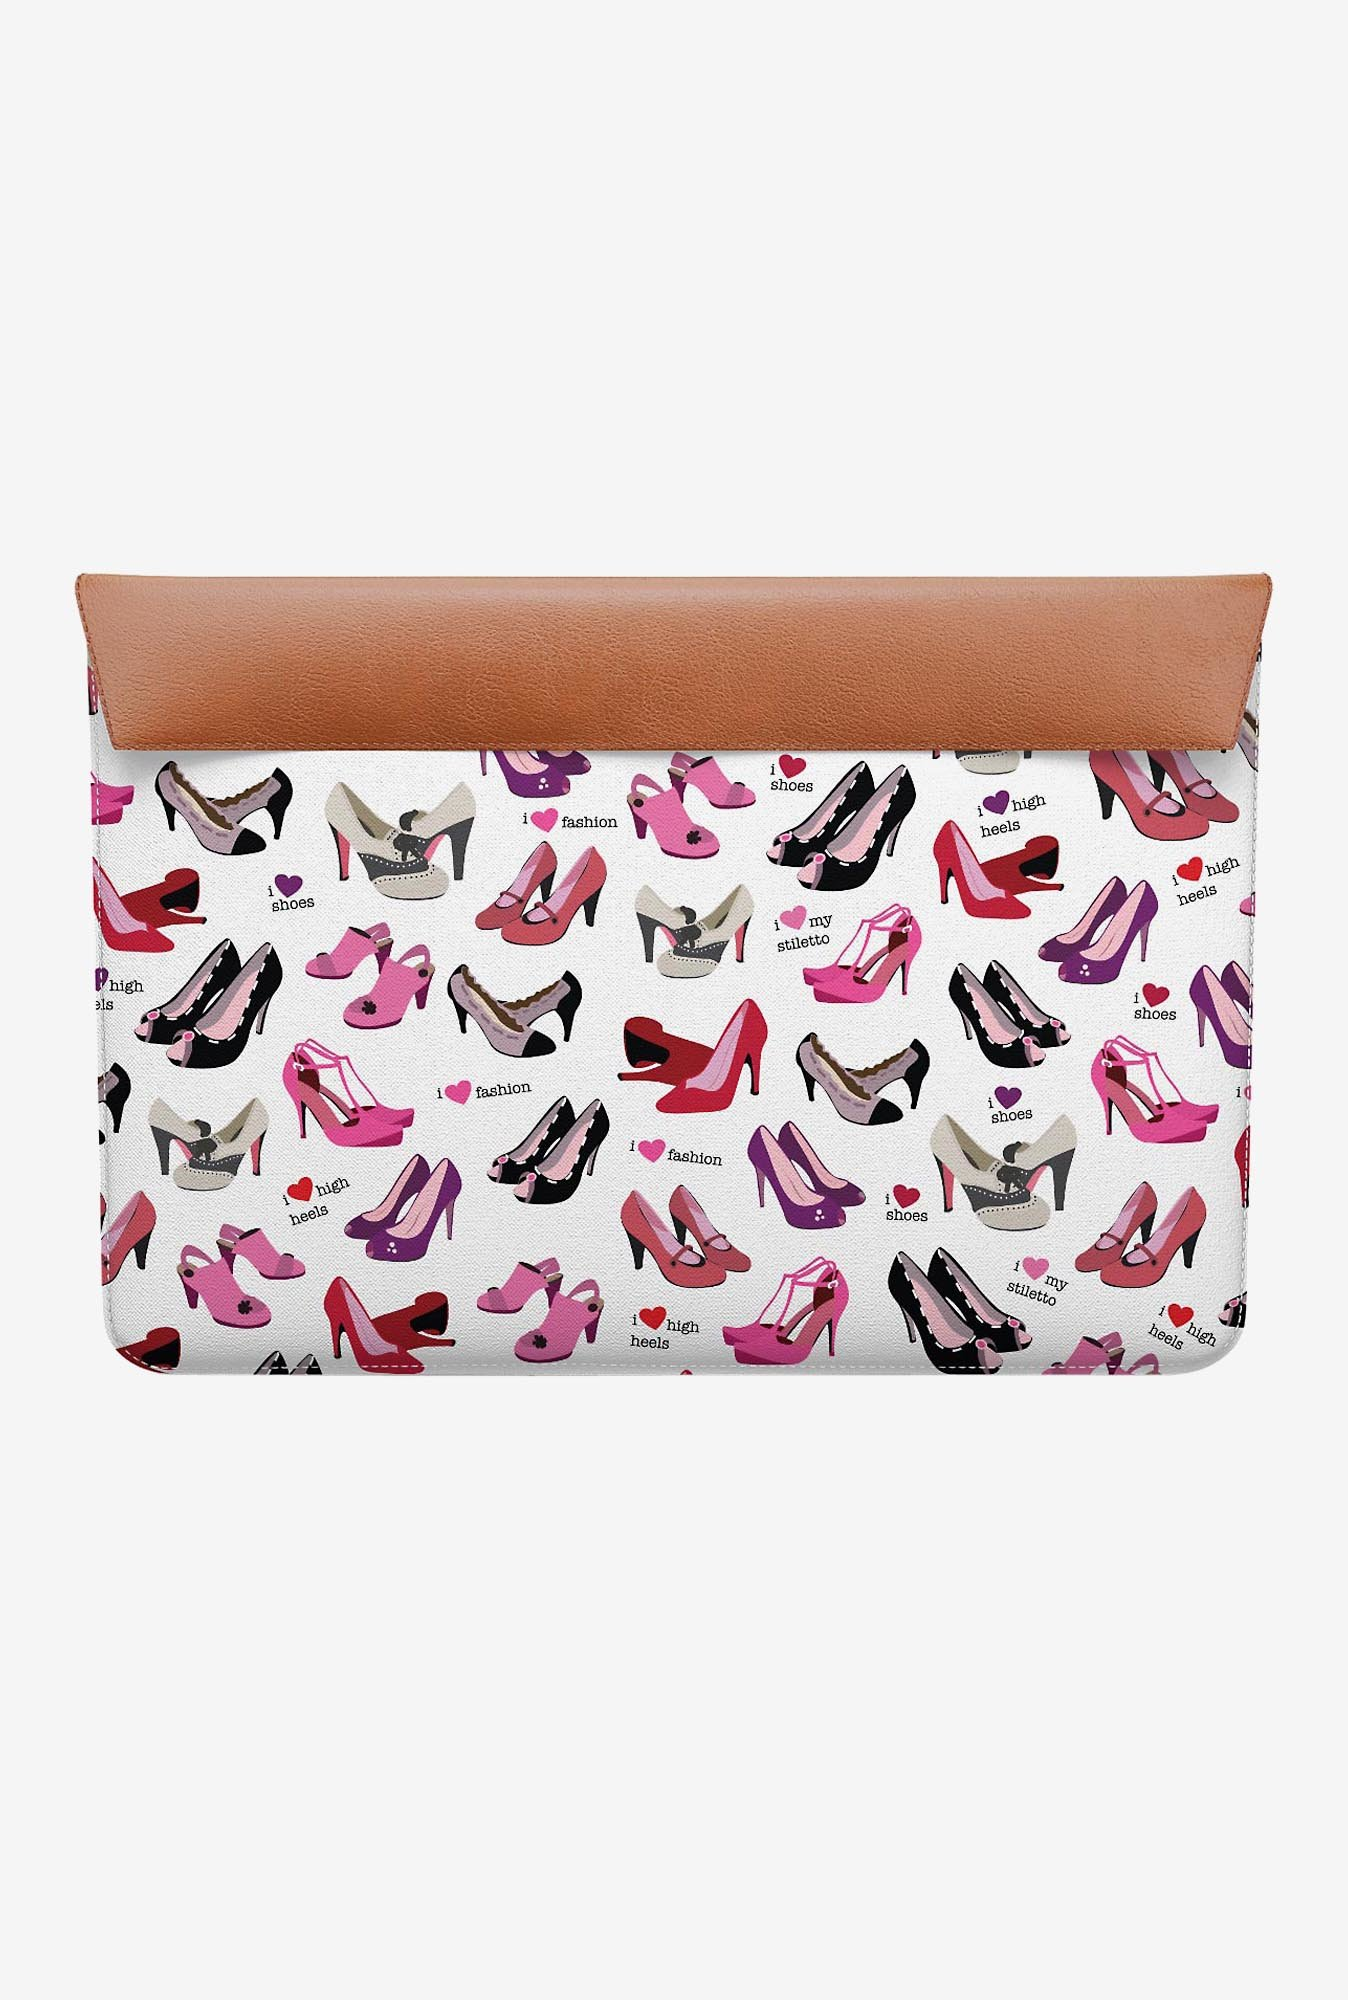 "DailyObjects Shoes MacBook Air 11"" Envelope Sleeve"